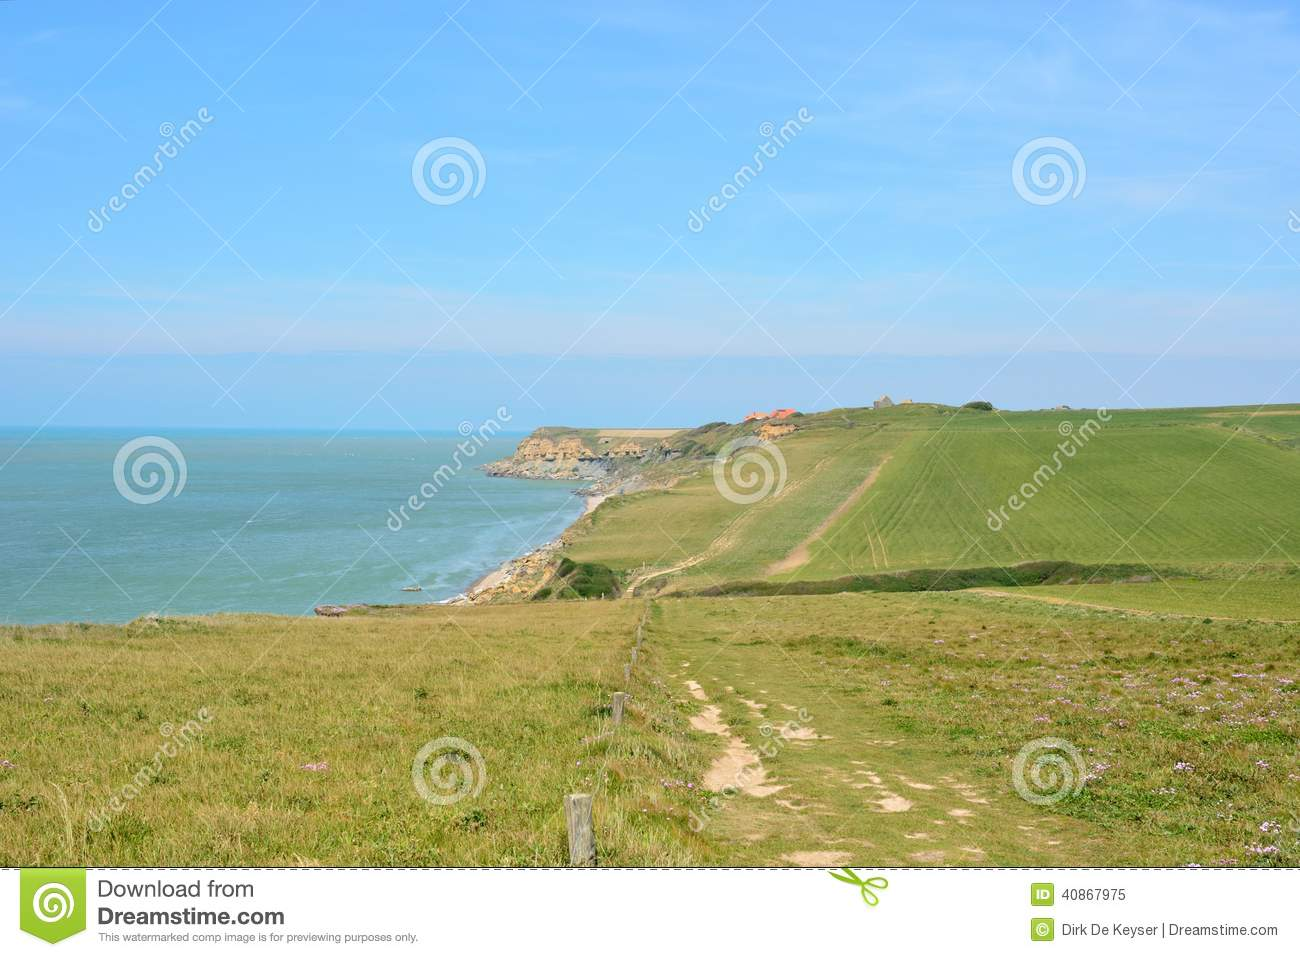 Cliffs at Cap Gris Nez, Cote opale, France